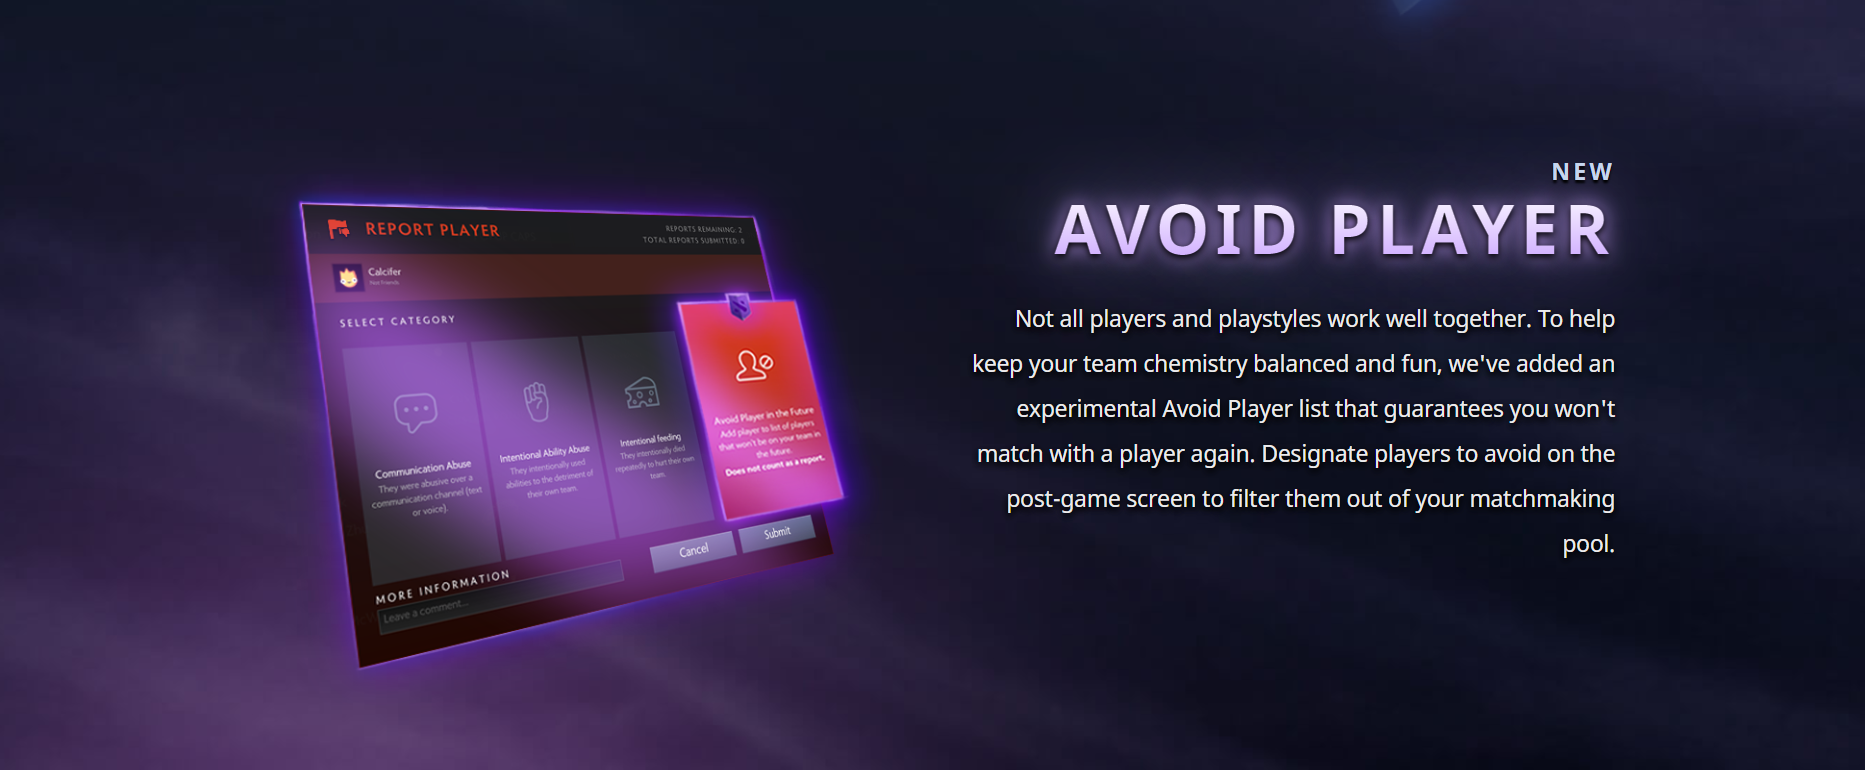 Valve lets players avoid toxic people in DOTA 2, charges for